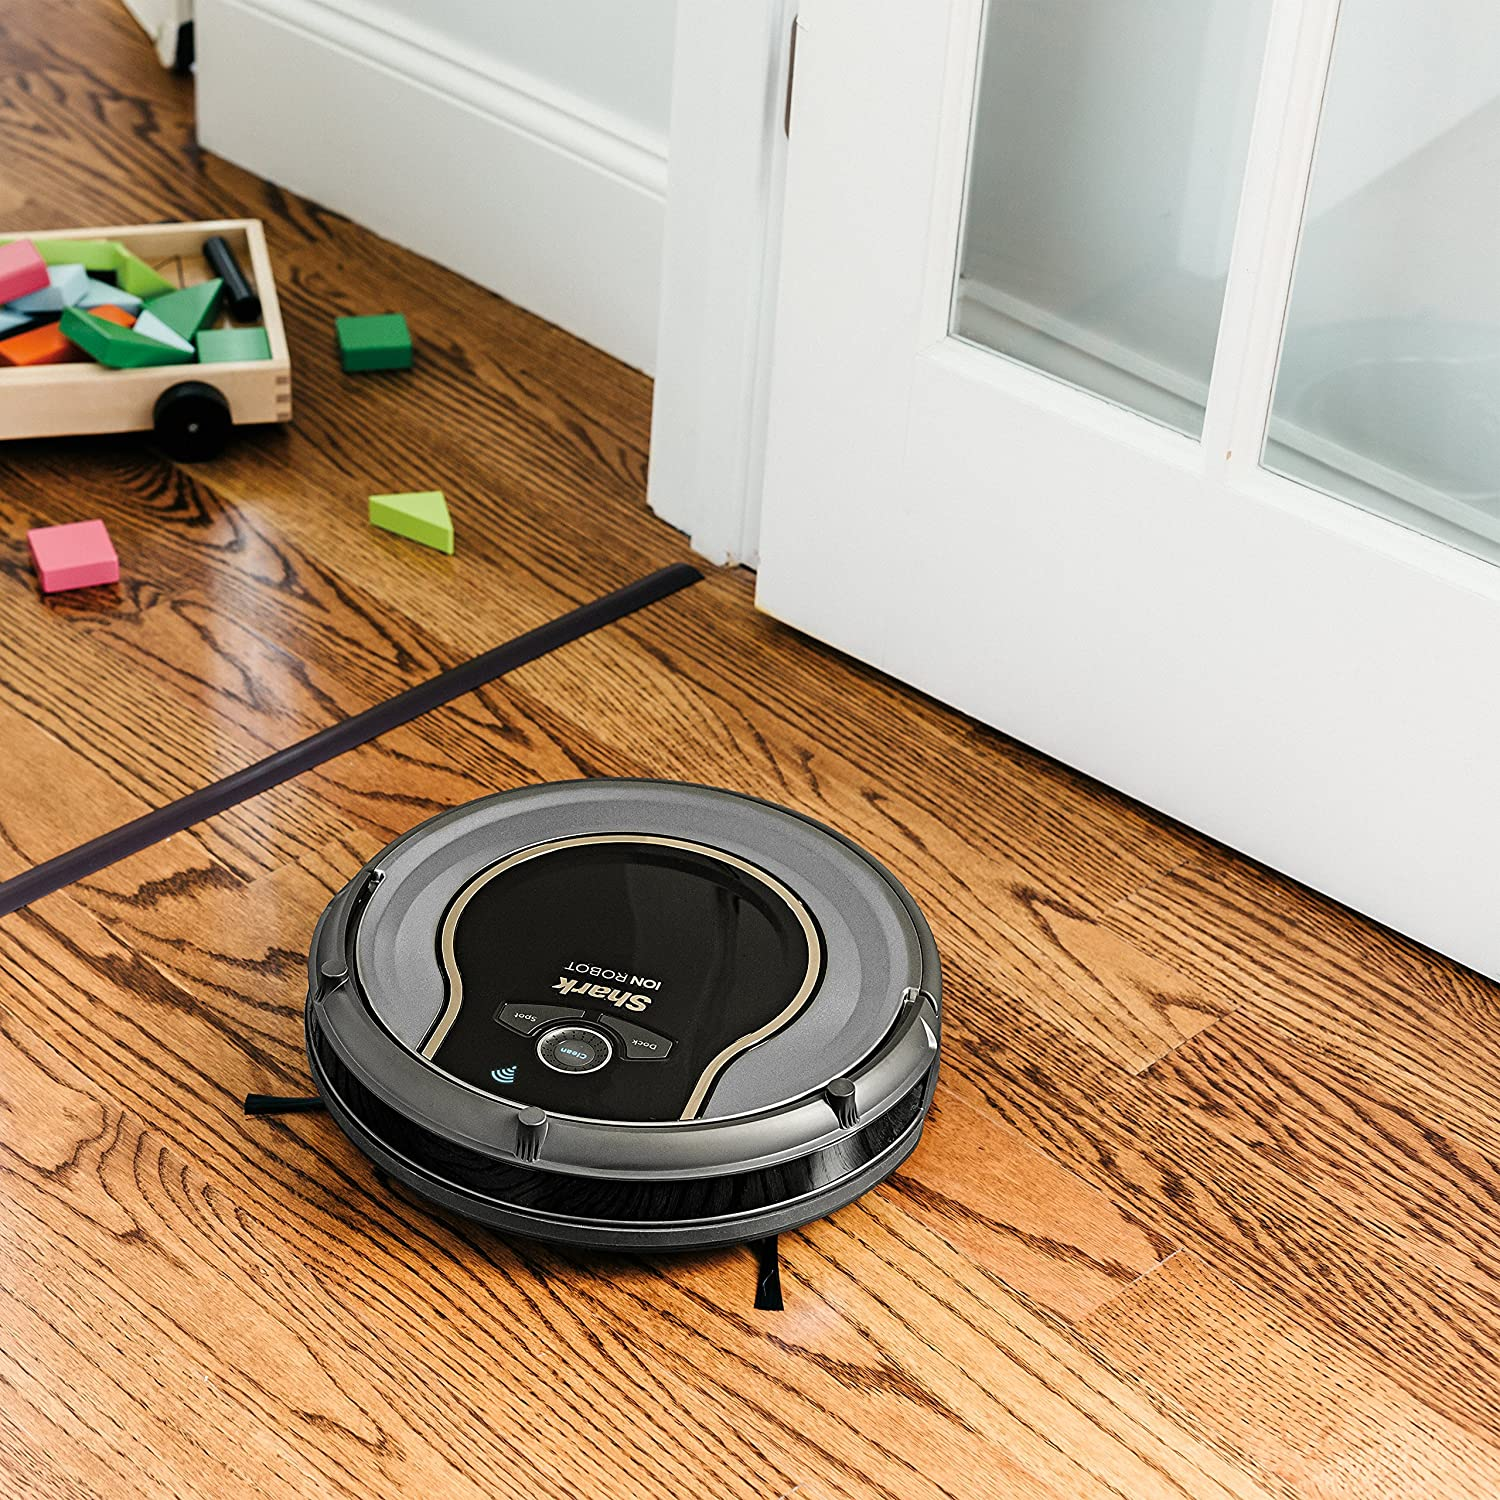 Shark ION RV750 Robot Vacuum Cleaner